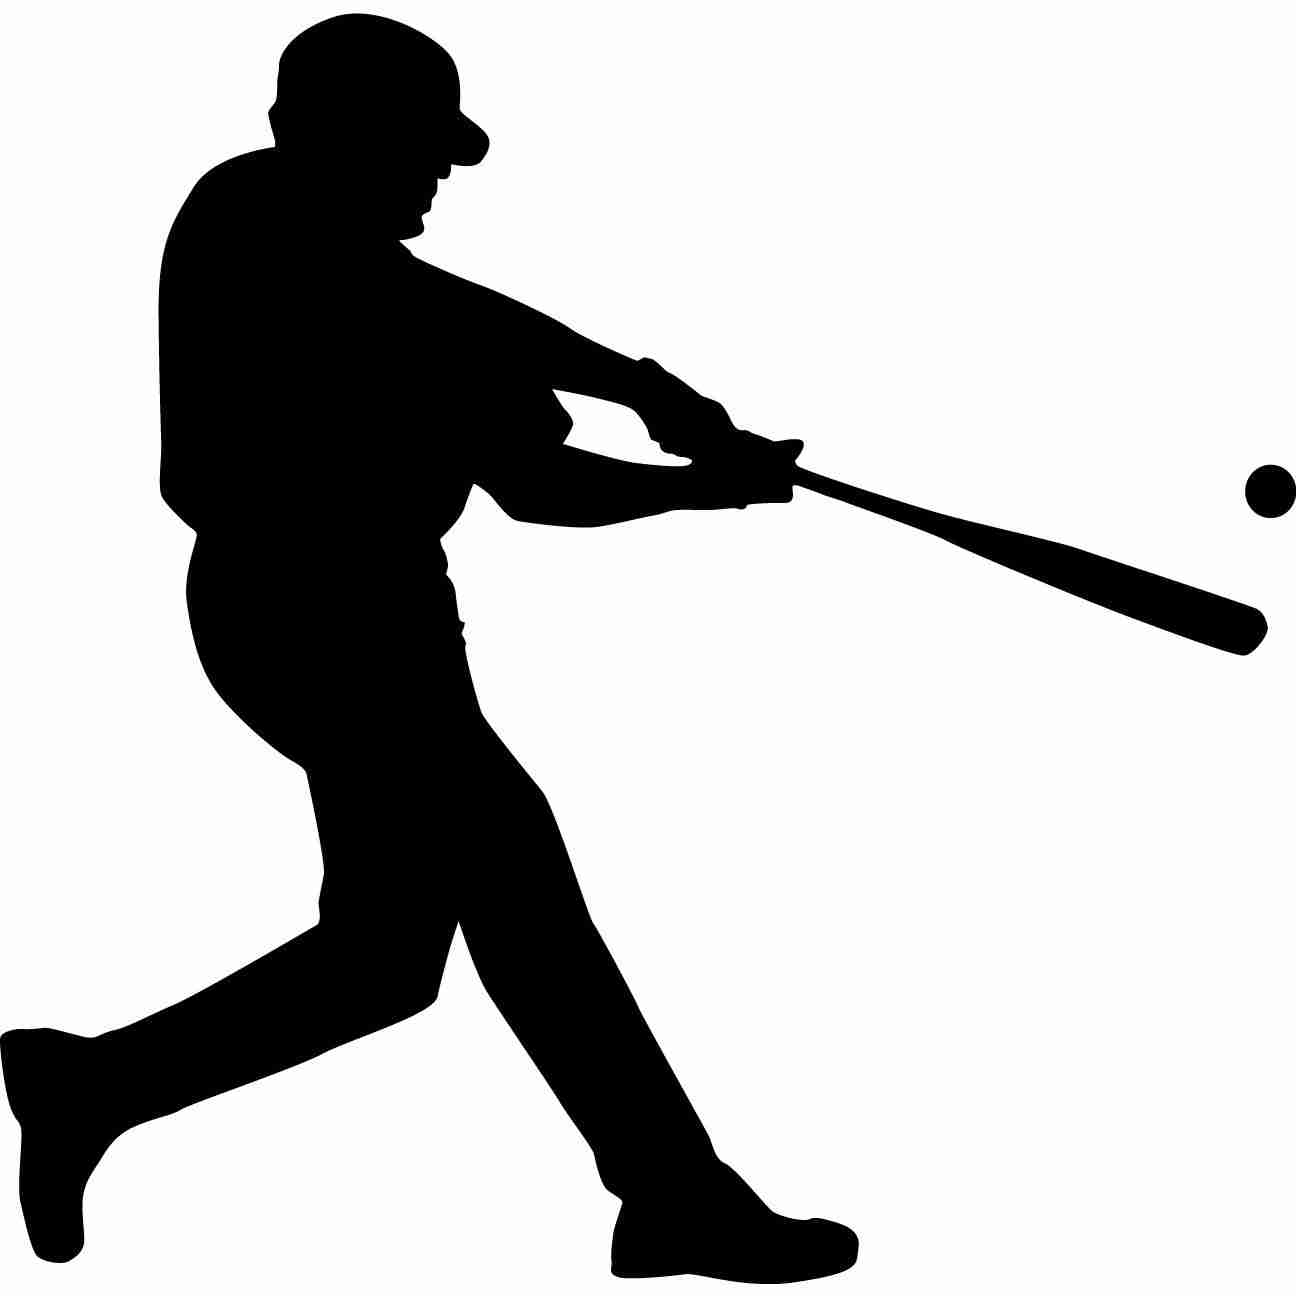 1296x1296 Baseball Silhouette Cliparts Free Download Clip Art Beauteous